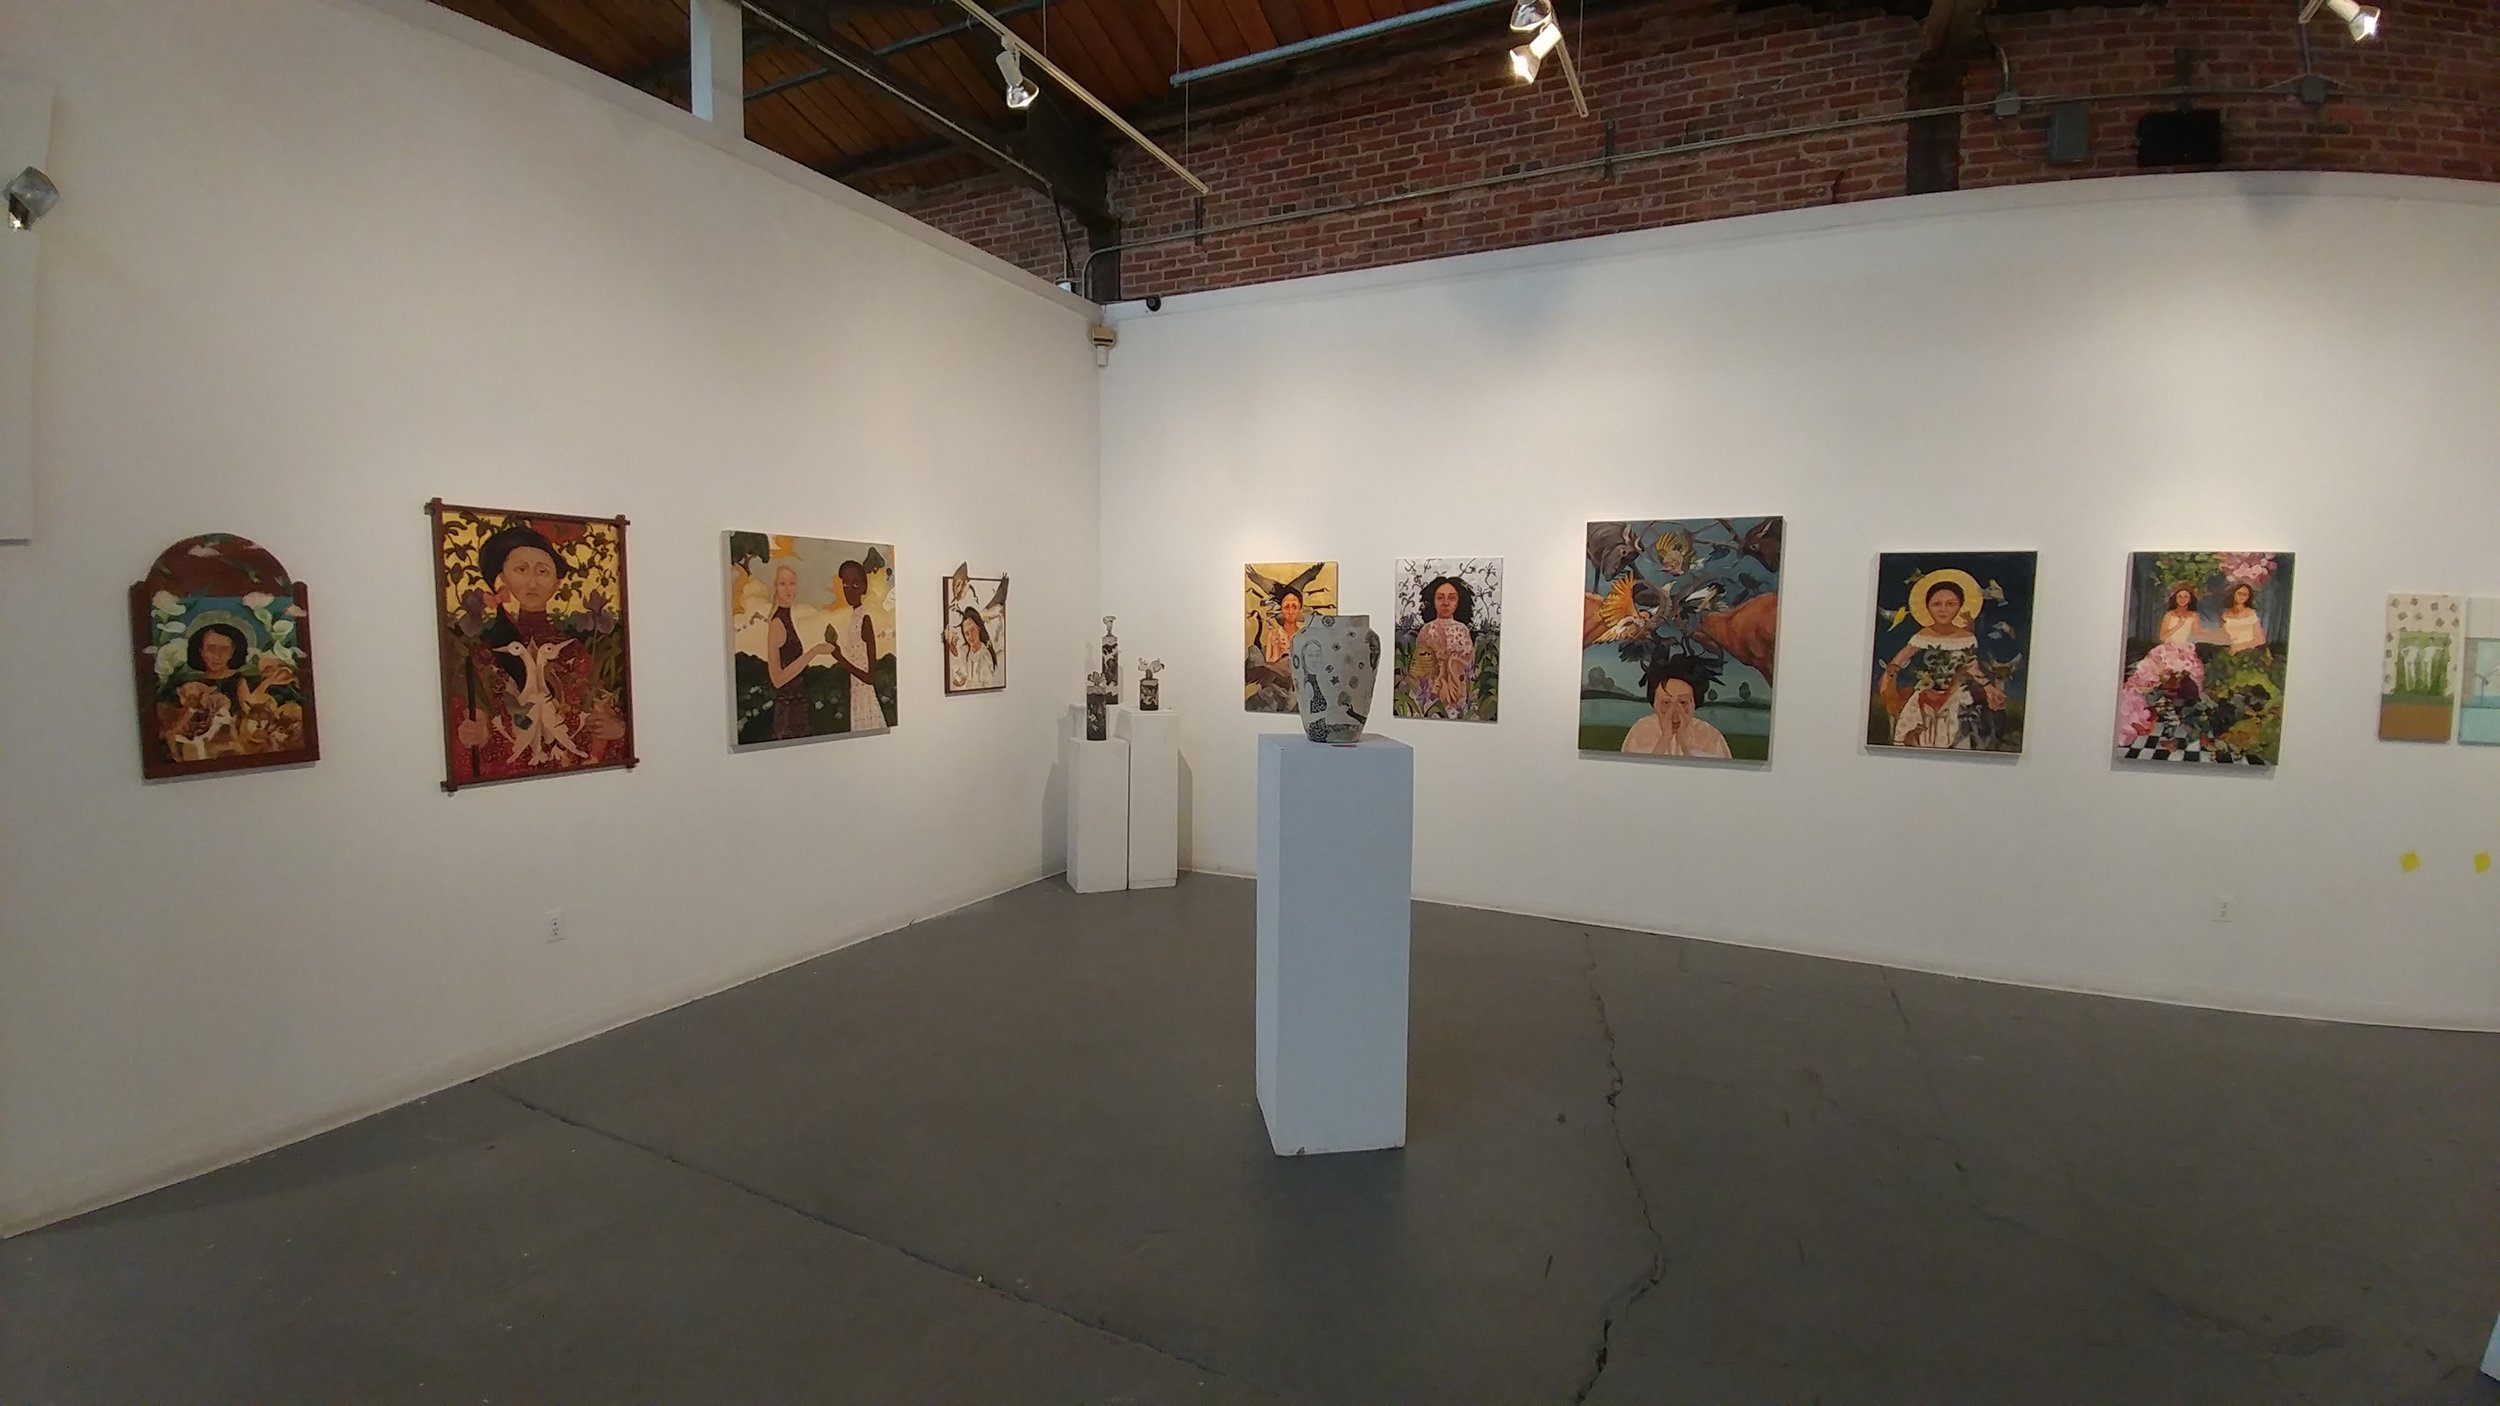 This is my corner of the 4 person show at Artworks Trenton.